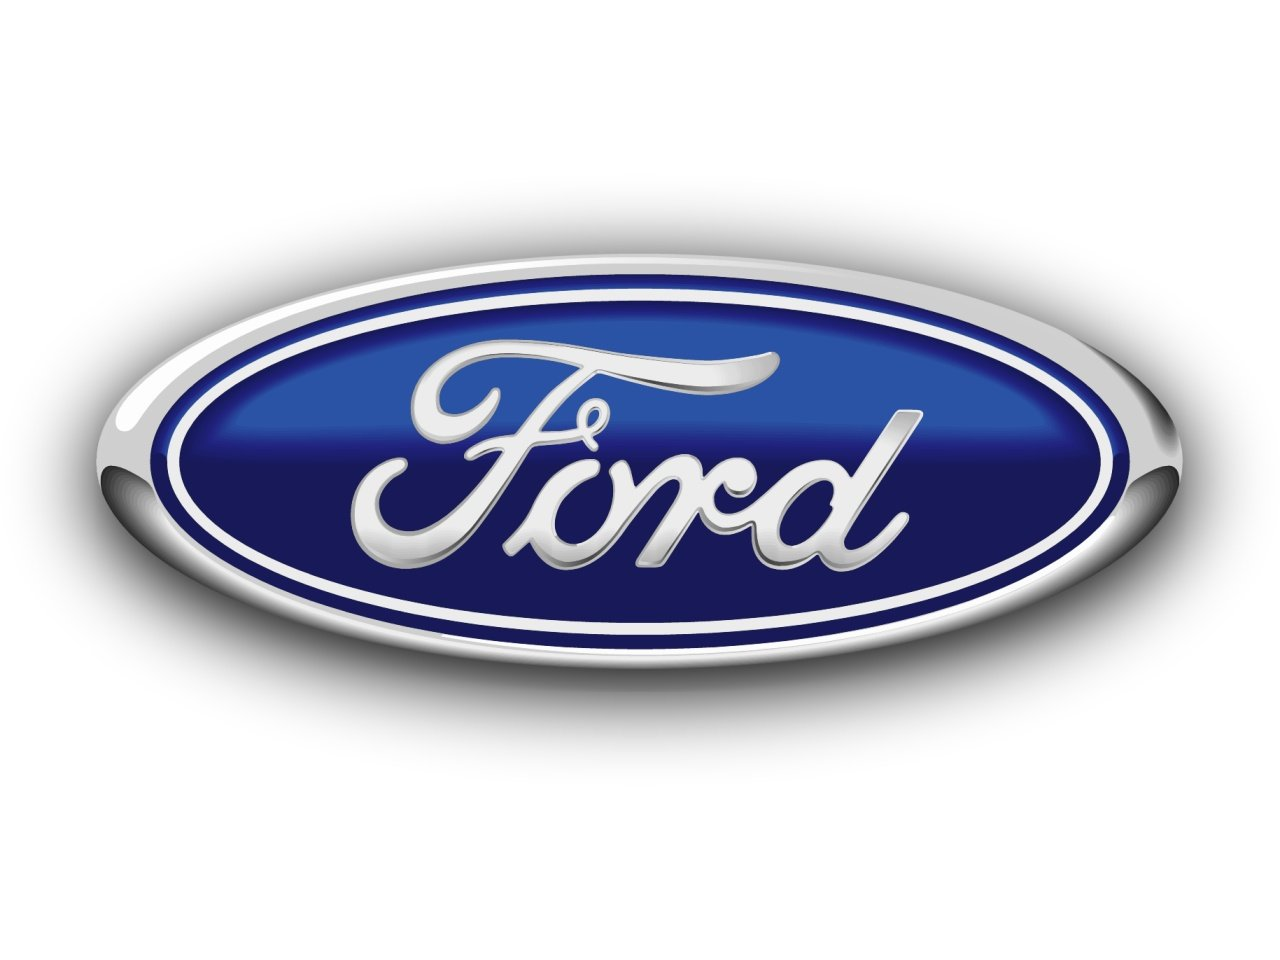 Ford service credit card payment login address for Ford motor company customer service